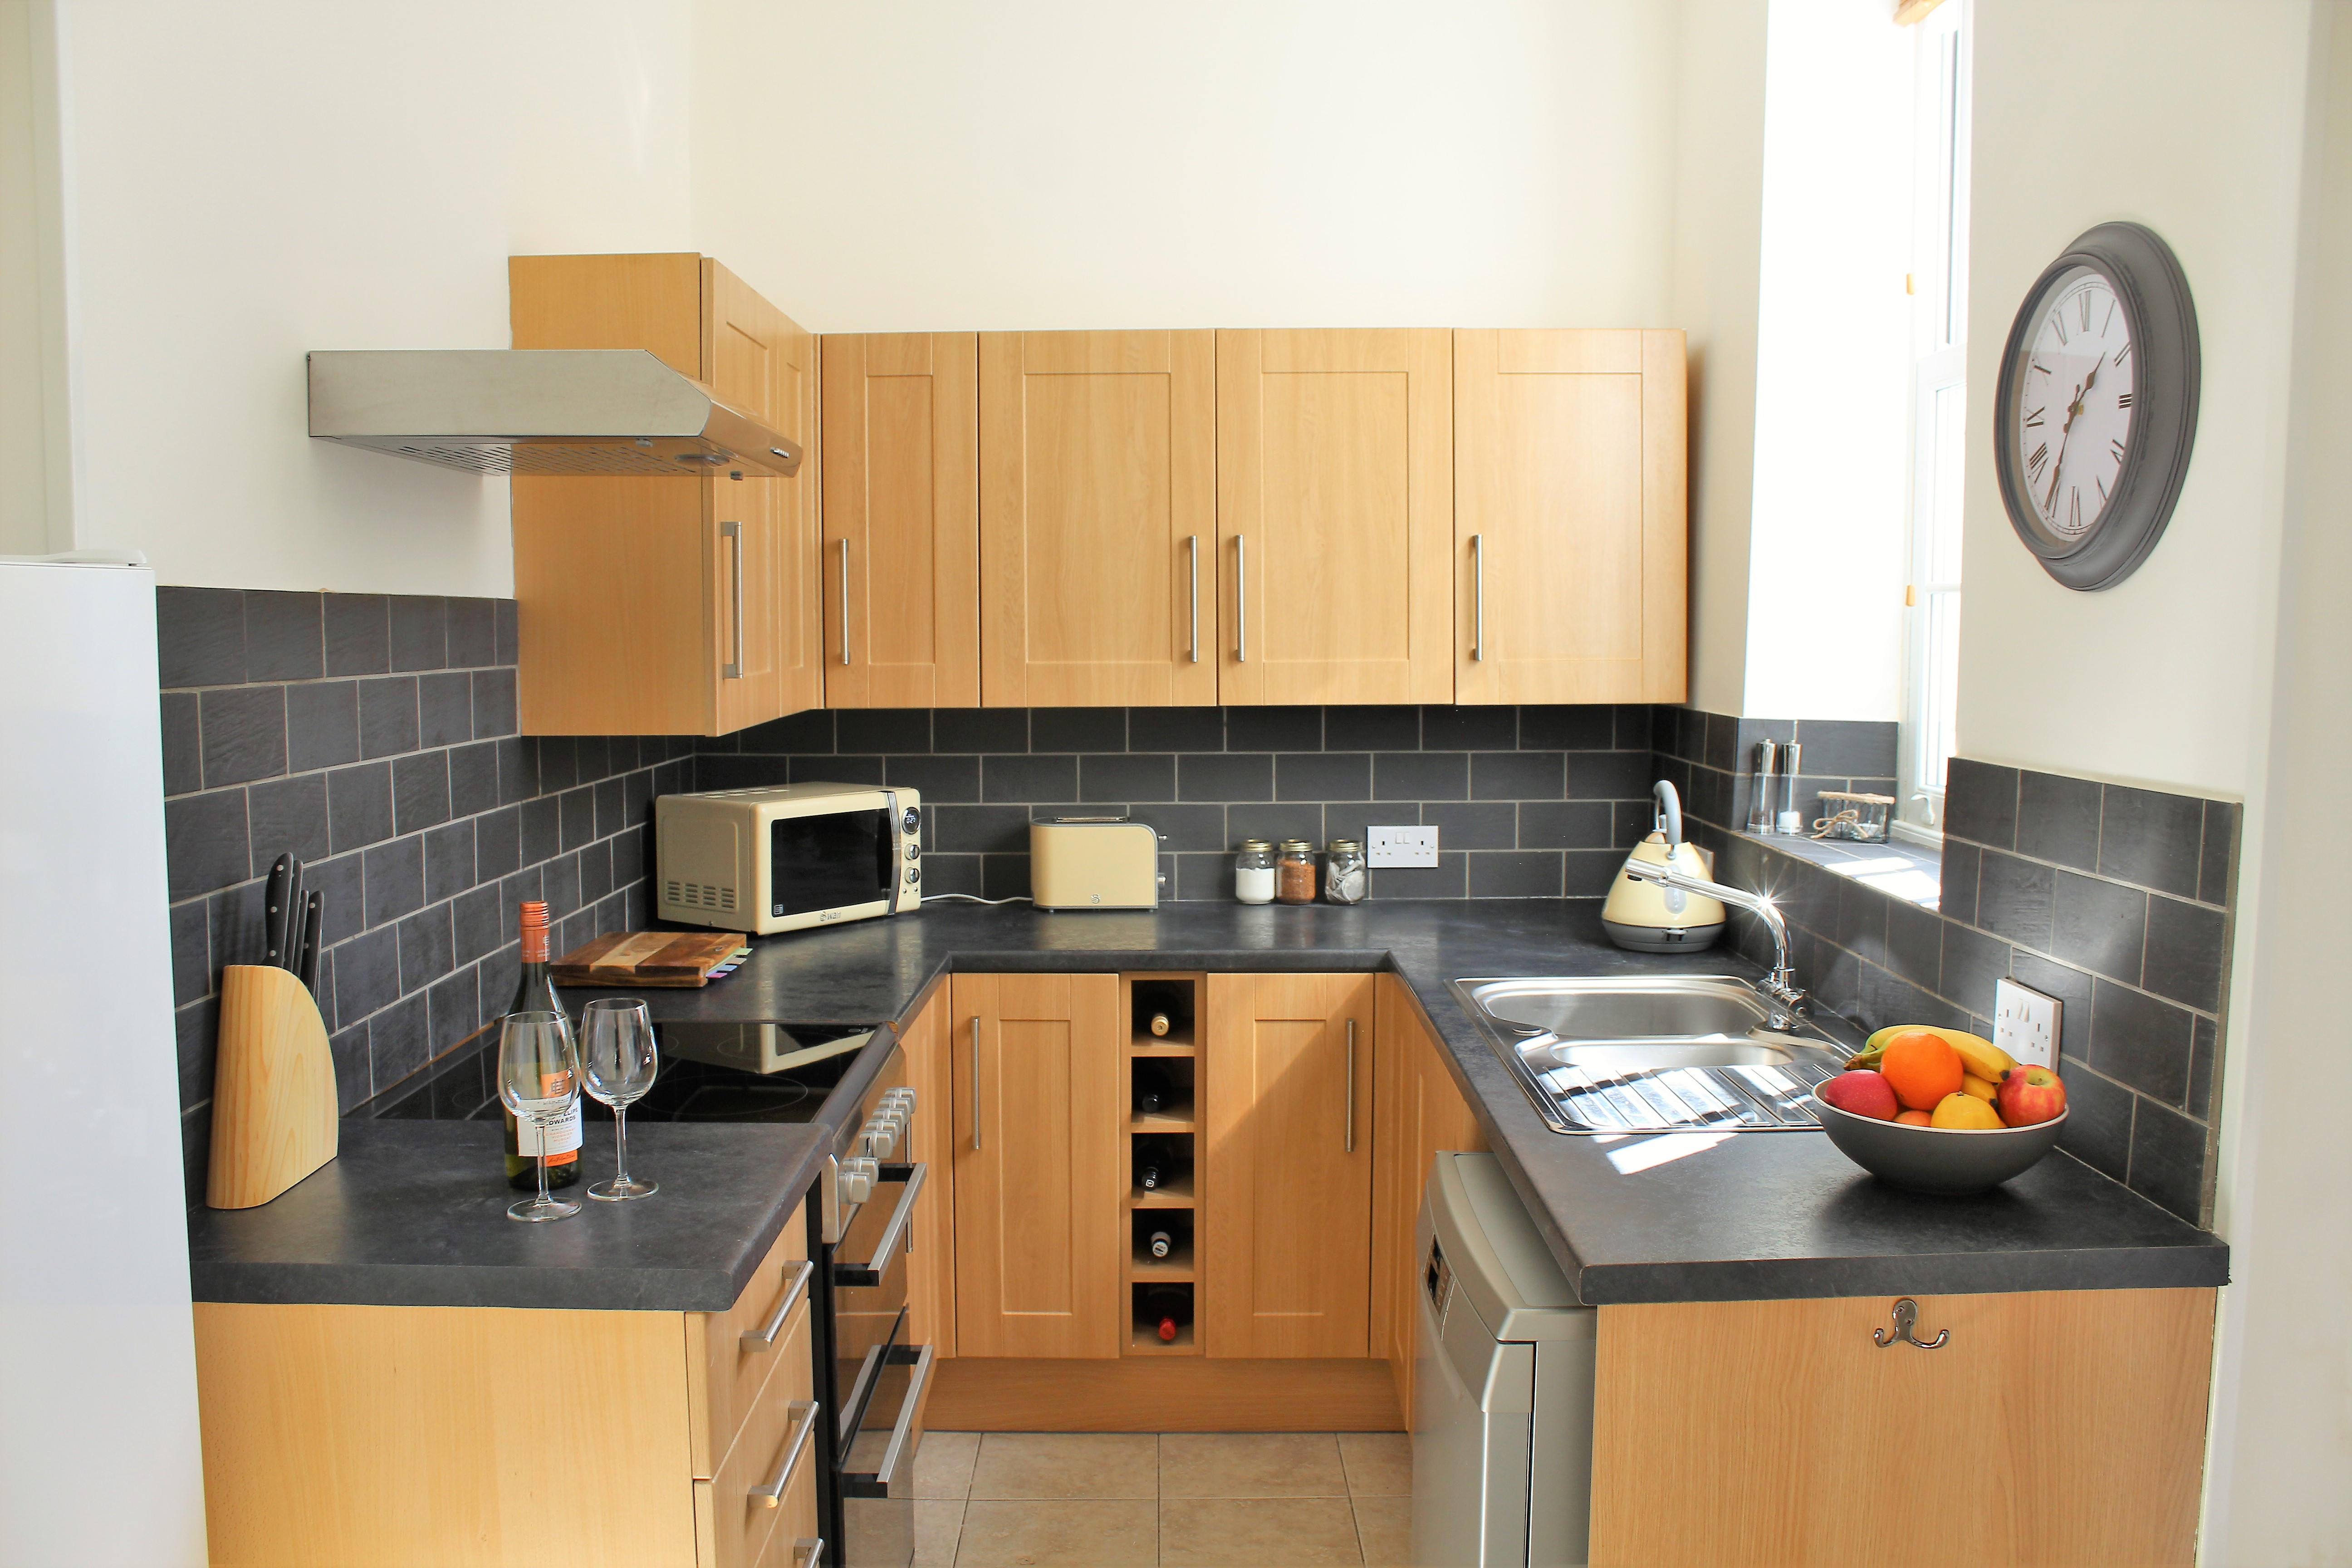 Well equipped kitchen with full size fridge freezer